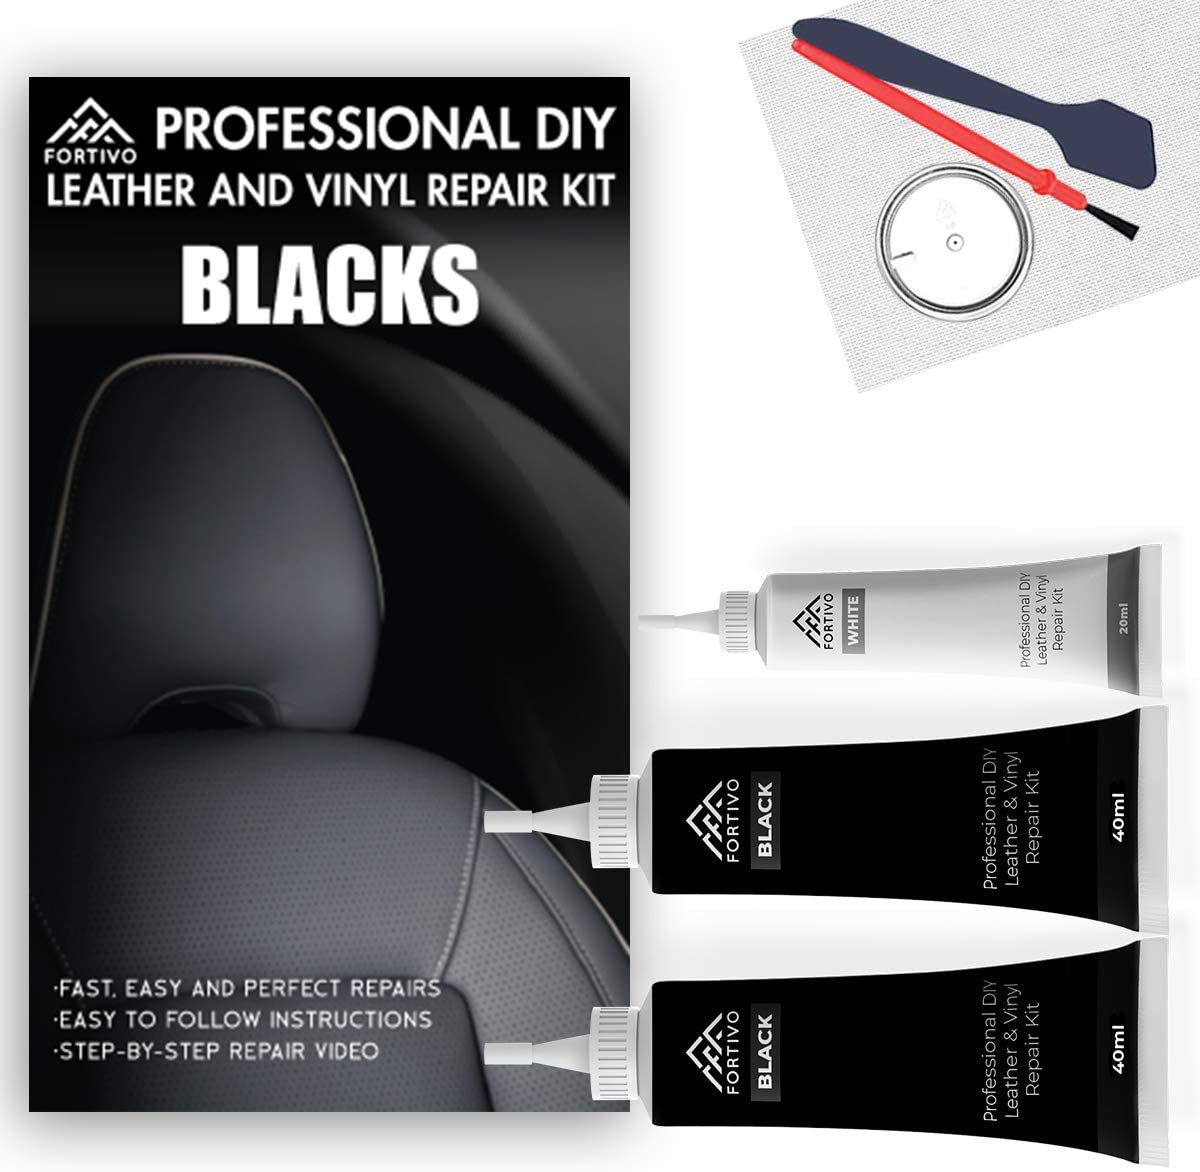 Black Leather and Vinyl Repair Kit - Furniture, Couch, Car Seats, Sofa, Jacket, Purse, Belt, Shoes | Genuine, Italian, Bonded, Bycast, PU, Pleather |No Heat Required | Repair & Restore